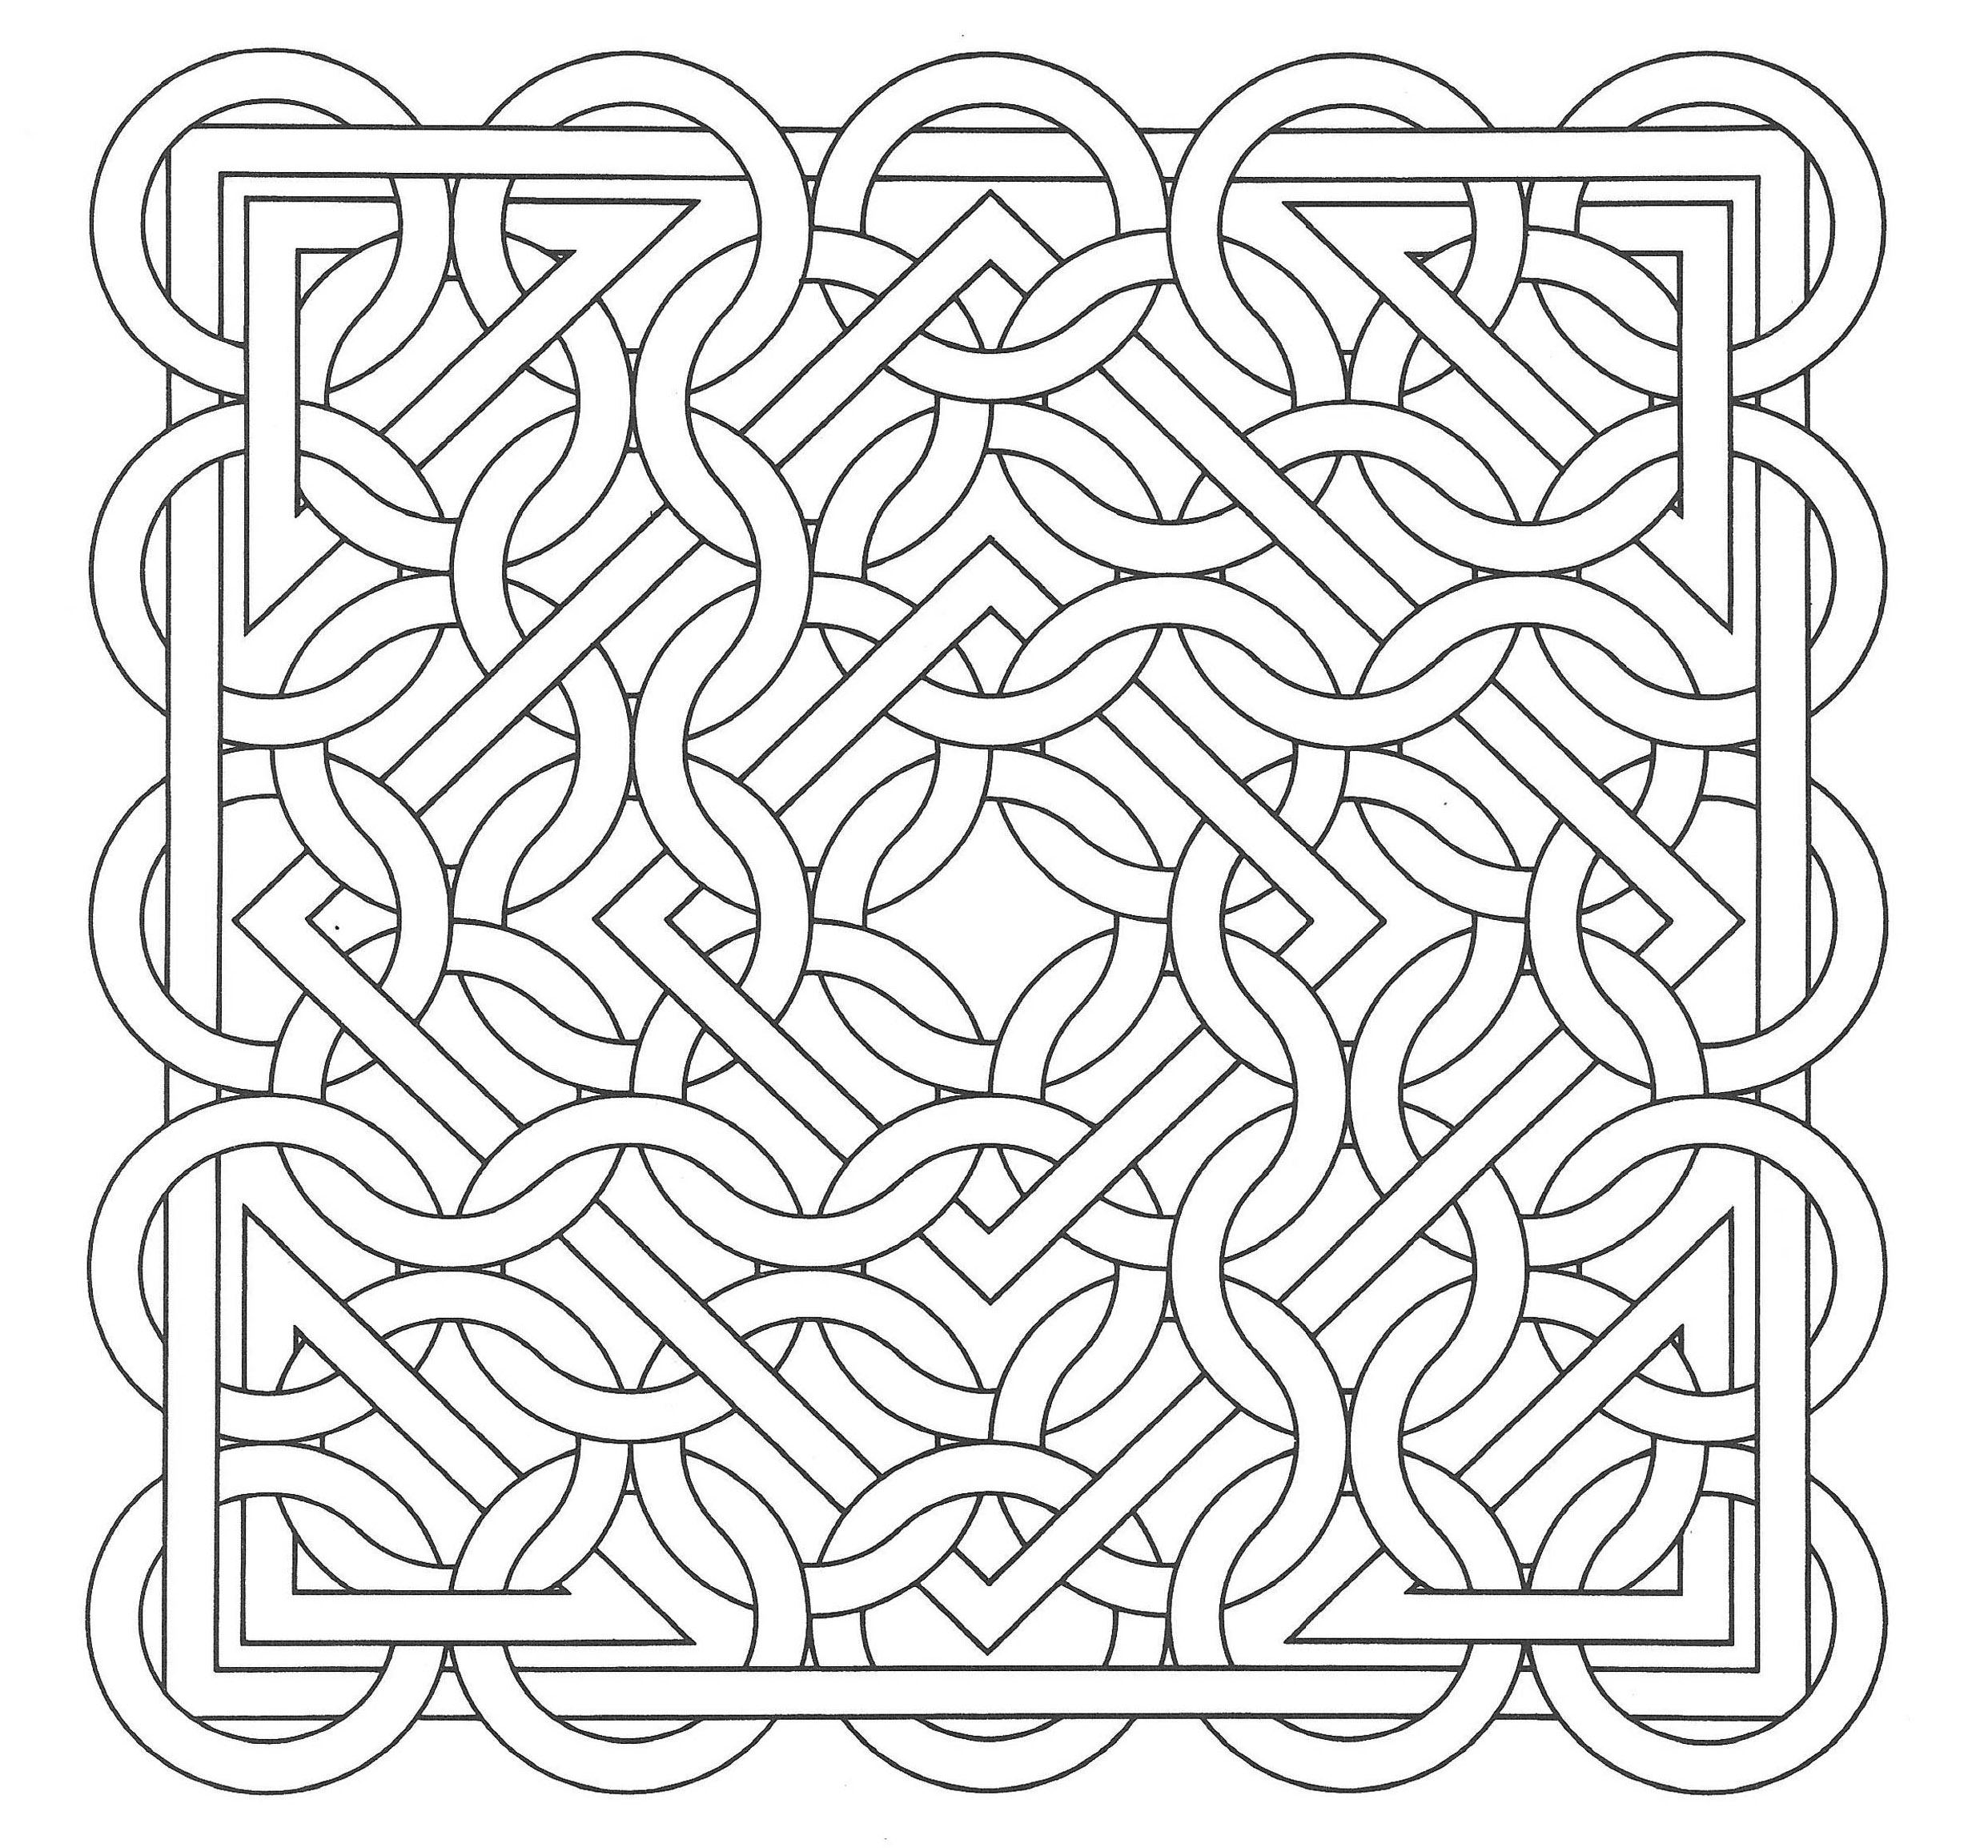 Relaxing Coloring Pages Optical Illusion Coloring Pages Unique Gallery Relaxing Coloring